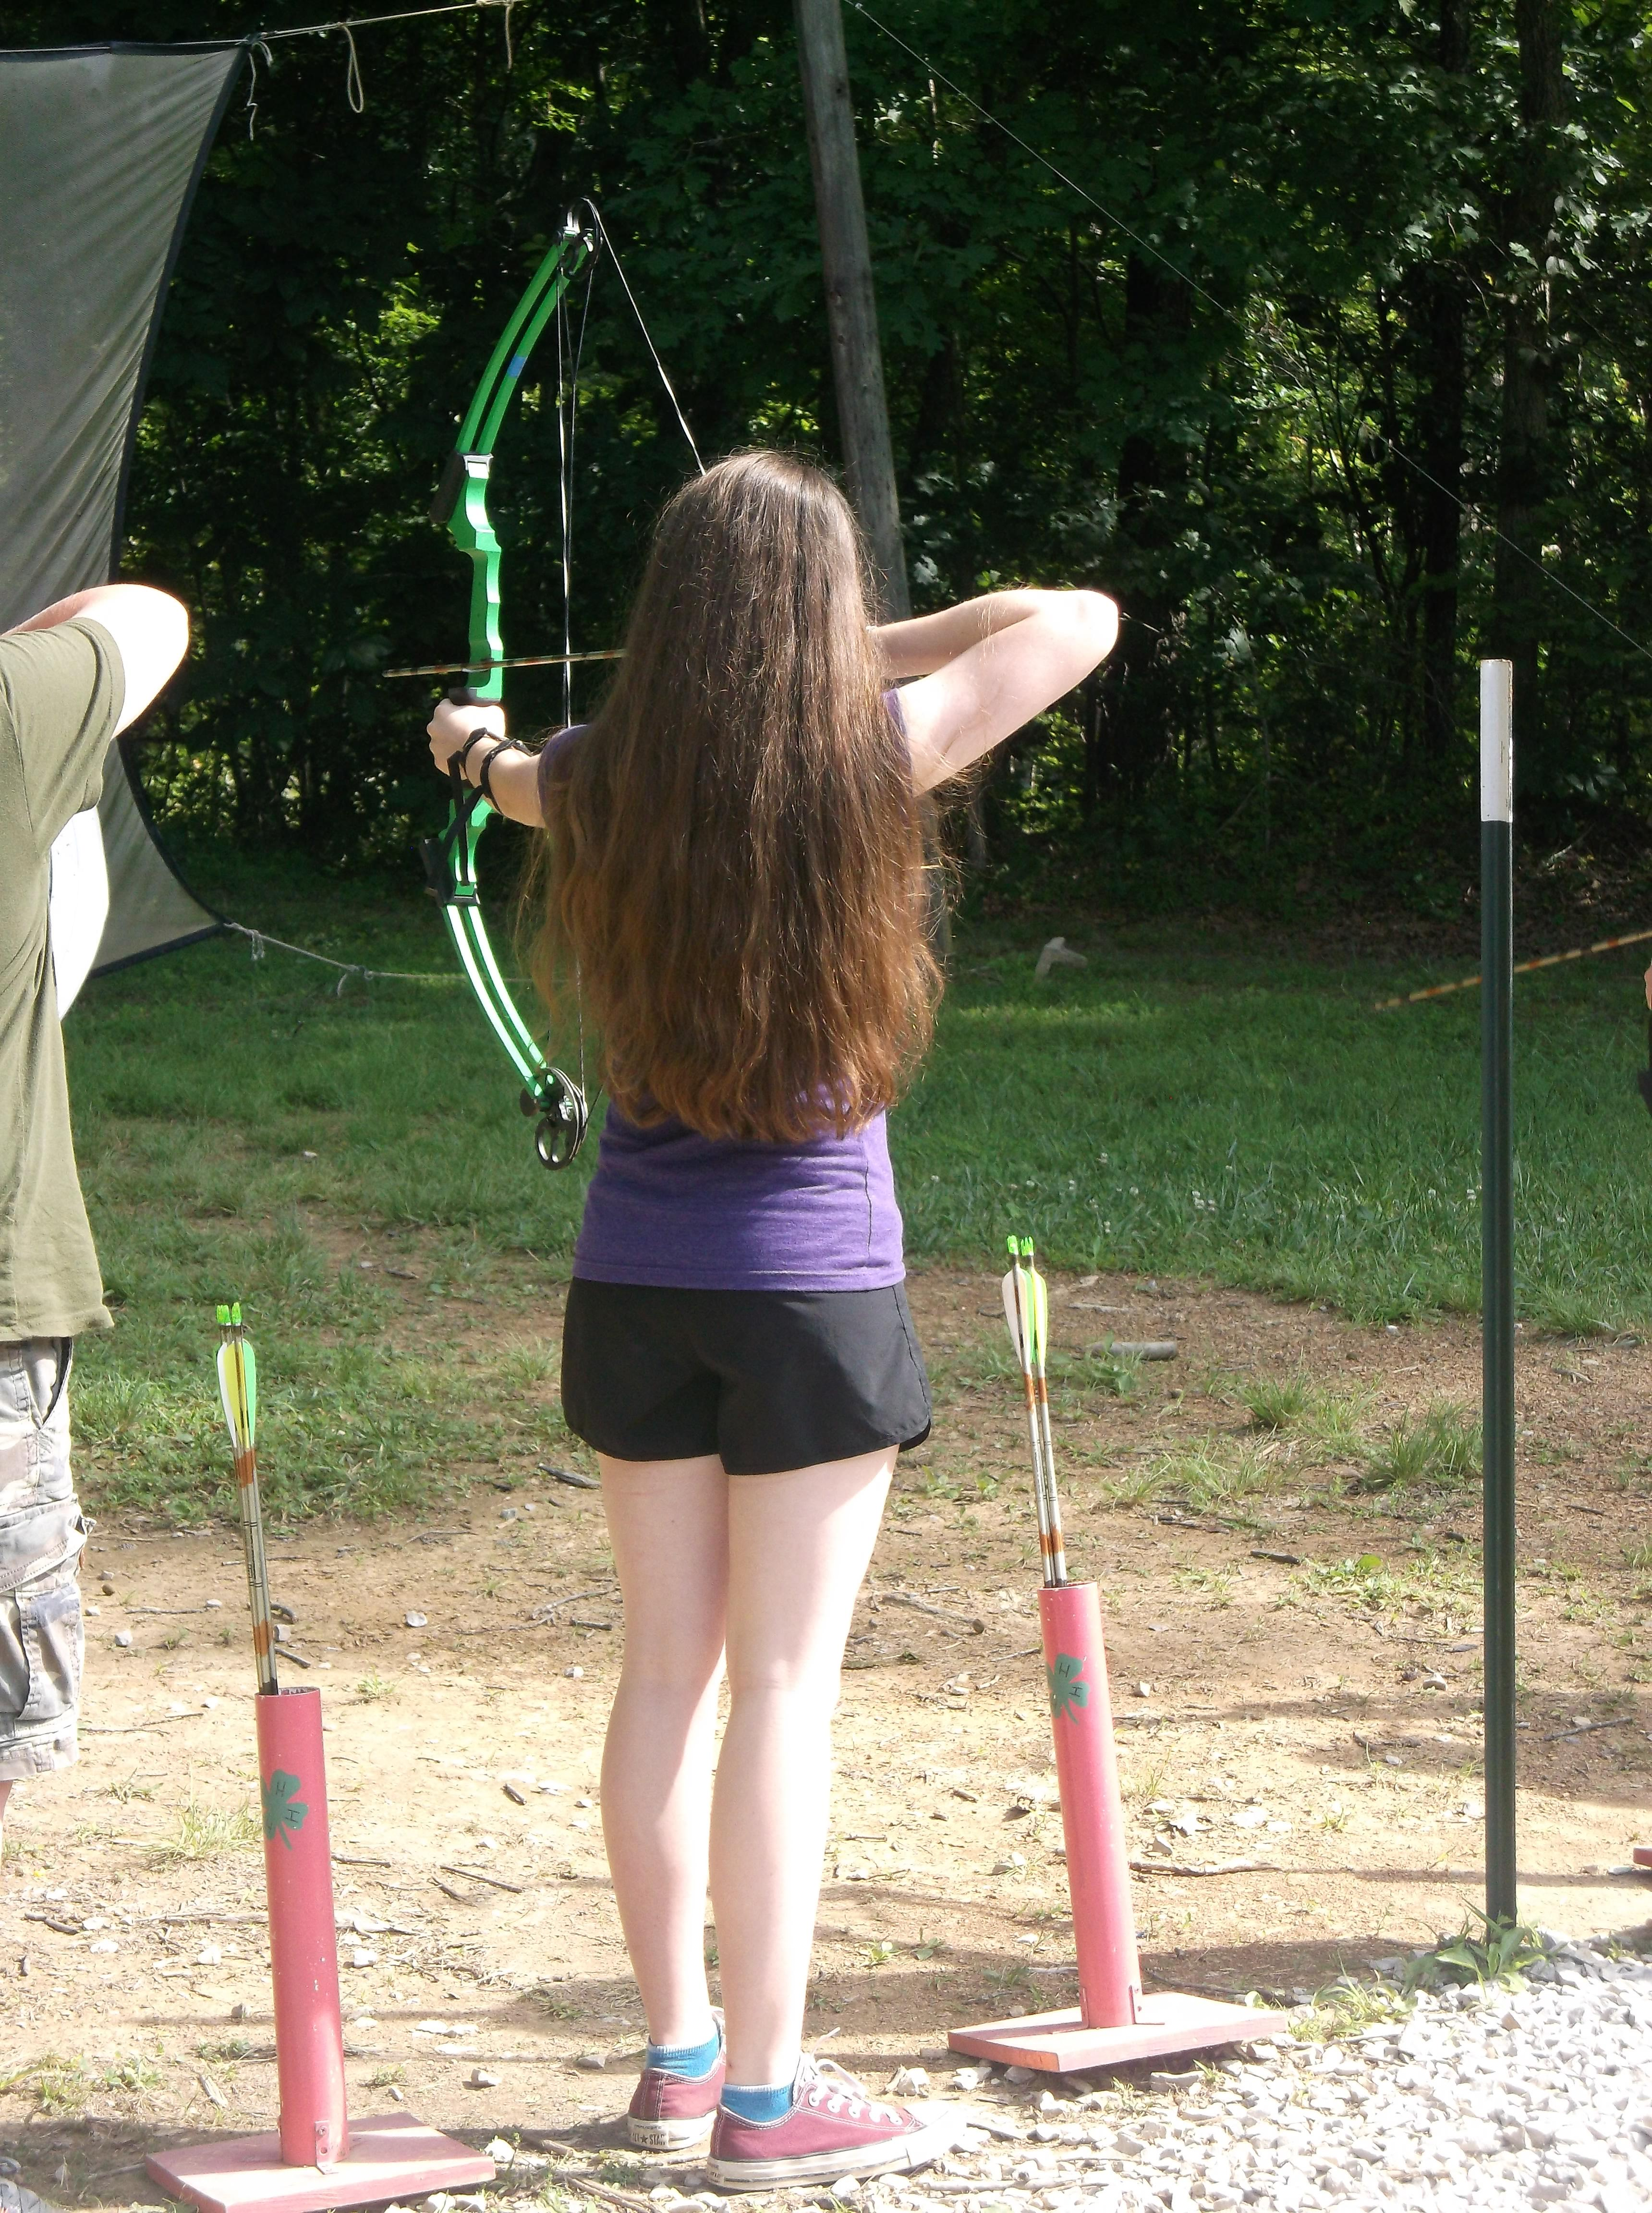 Shooting Sports at 4-H Camp